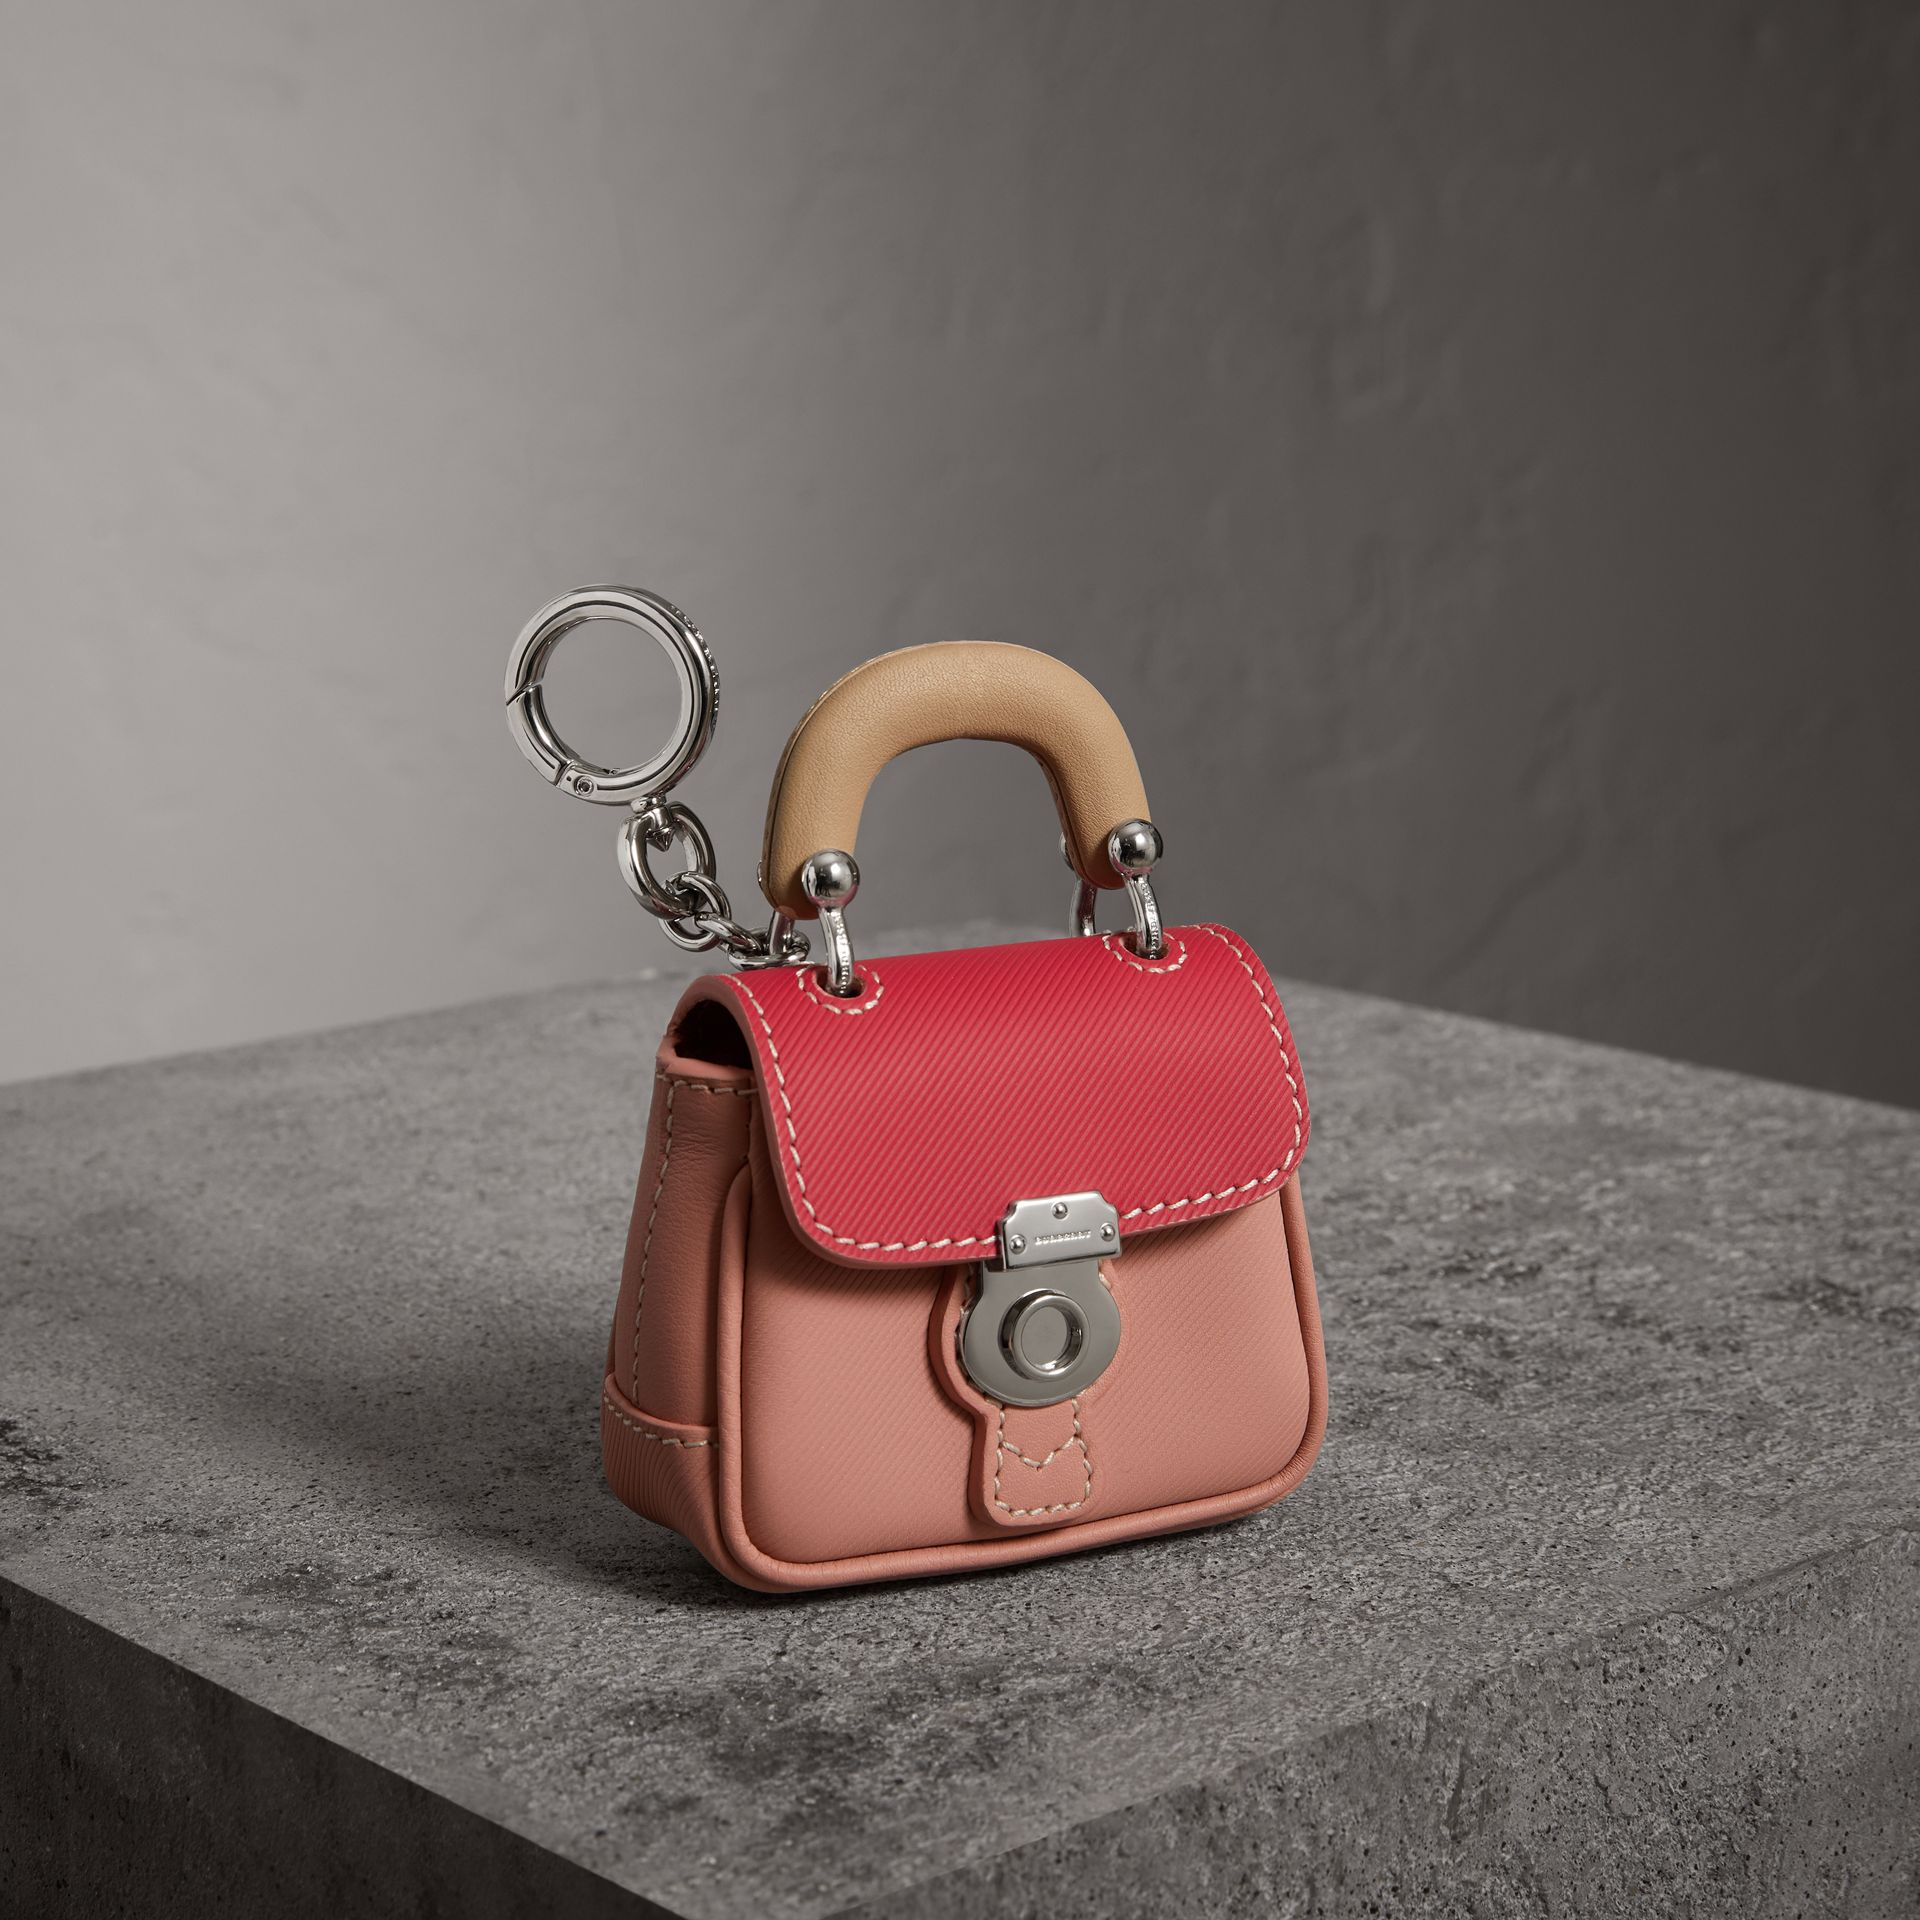 The DK88 Charm in Ash Rose/ Bright Russet | Burberry - gallery image 0